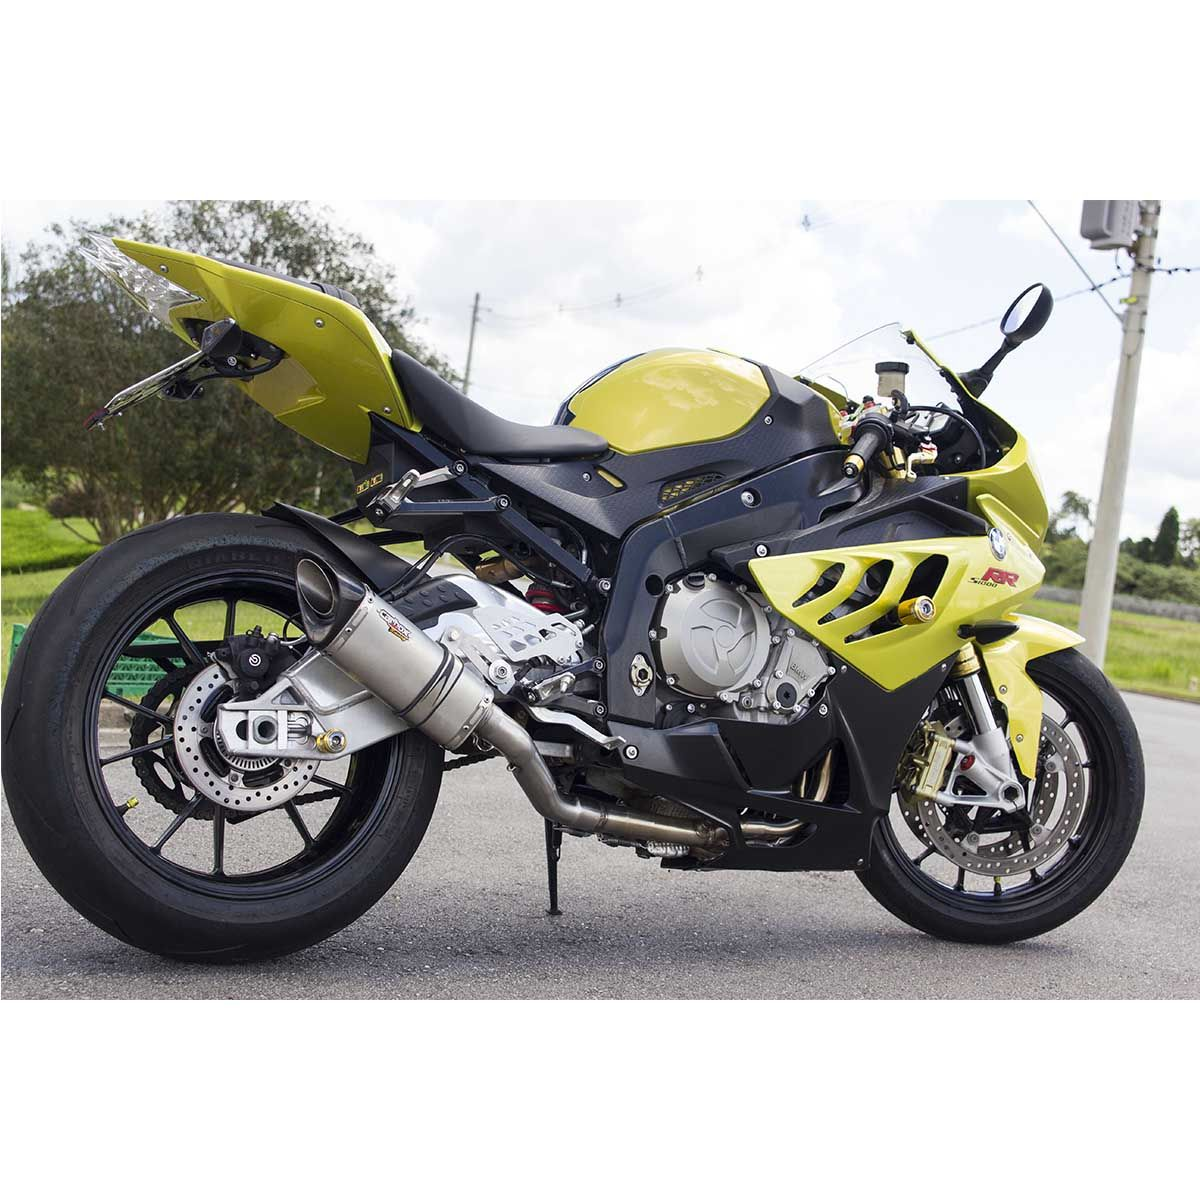 Ponteira Escape Full 4x2x1 Scorpion S725 Inox - Bmw S1000rr